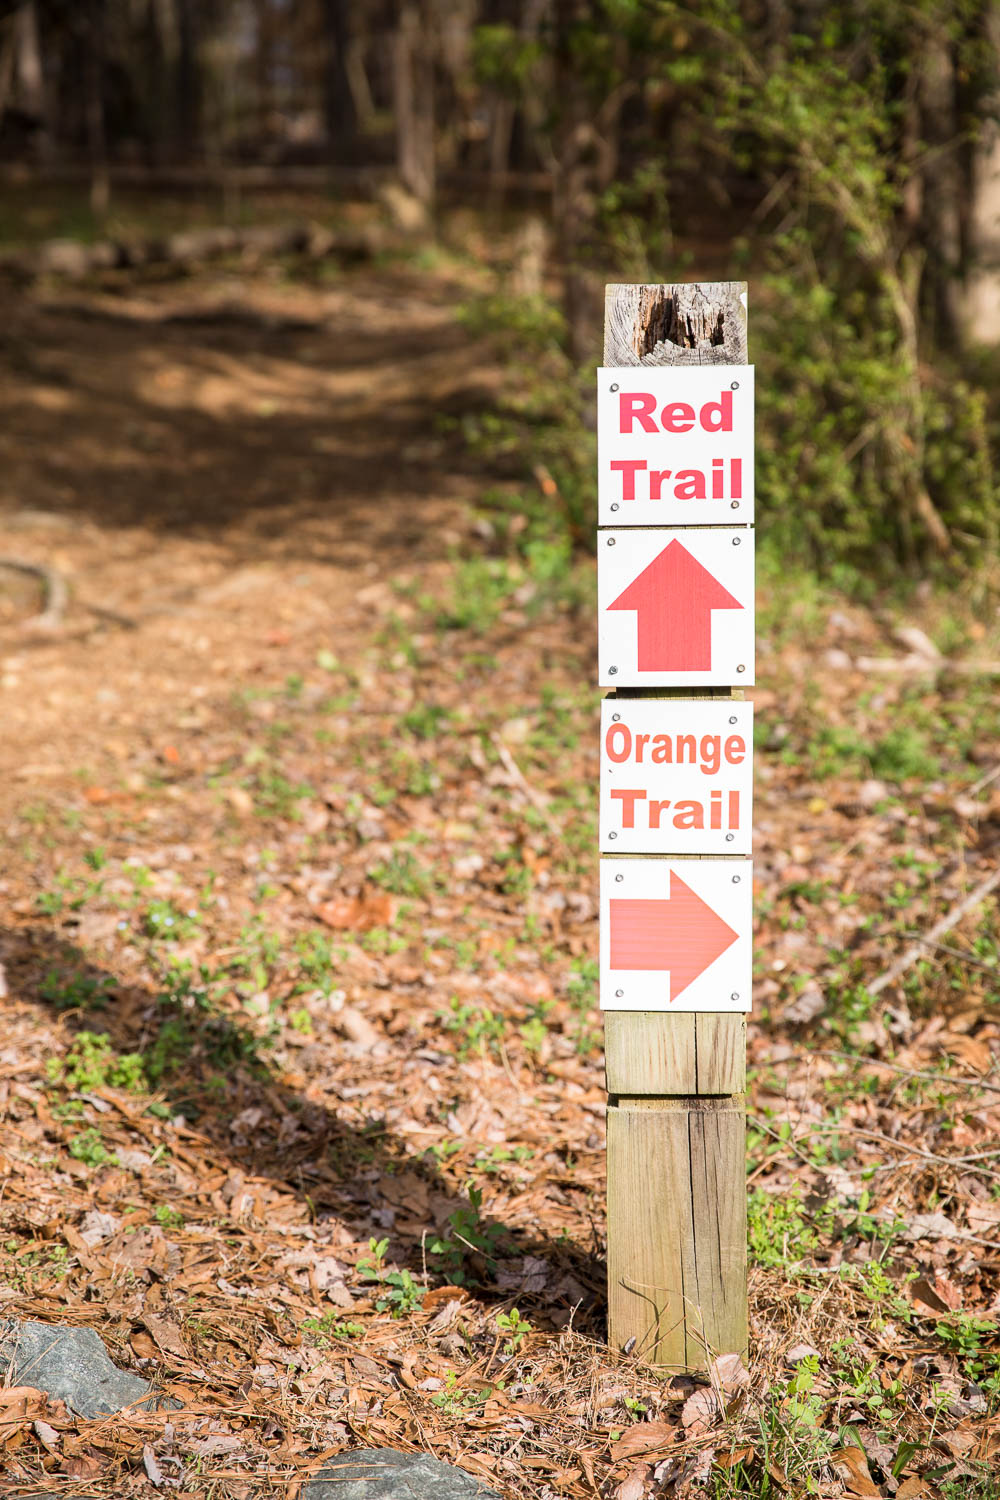 We took the Red Trail at Adams Tract in Carrboro